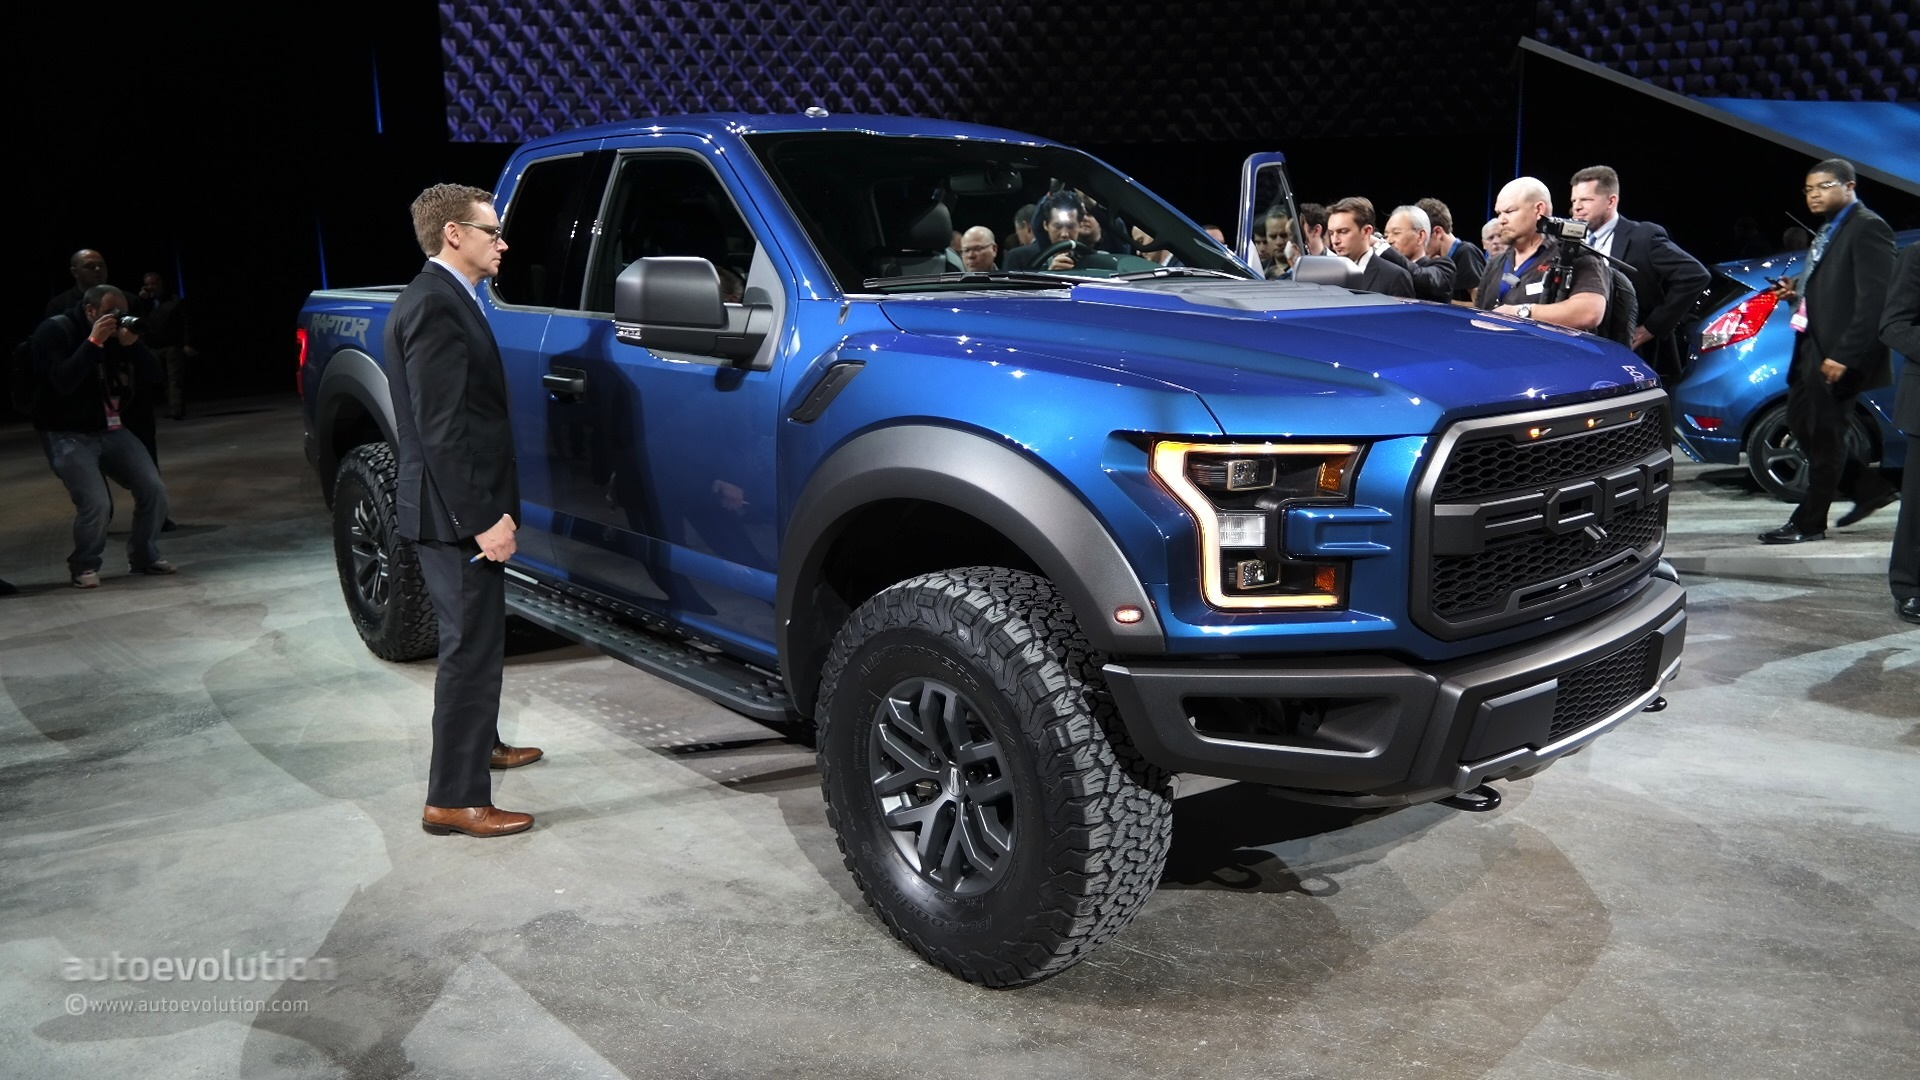 2017 ford f 150 raptor debuts at detroit feels more practical live photos autoevolution. Black Bedroom Furniture Sets. Home Design Ideas